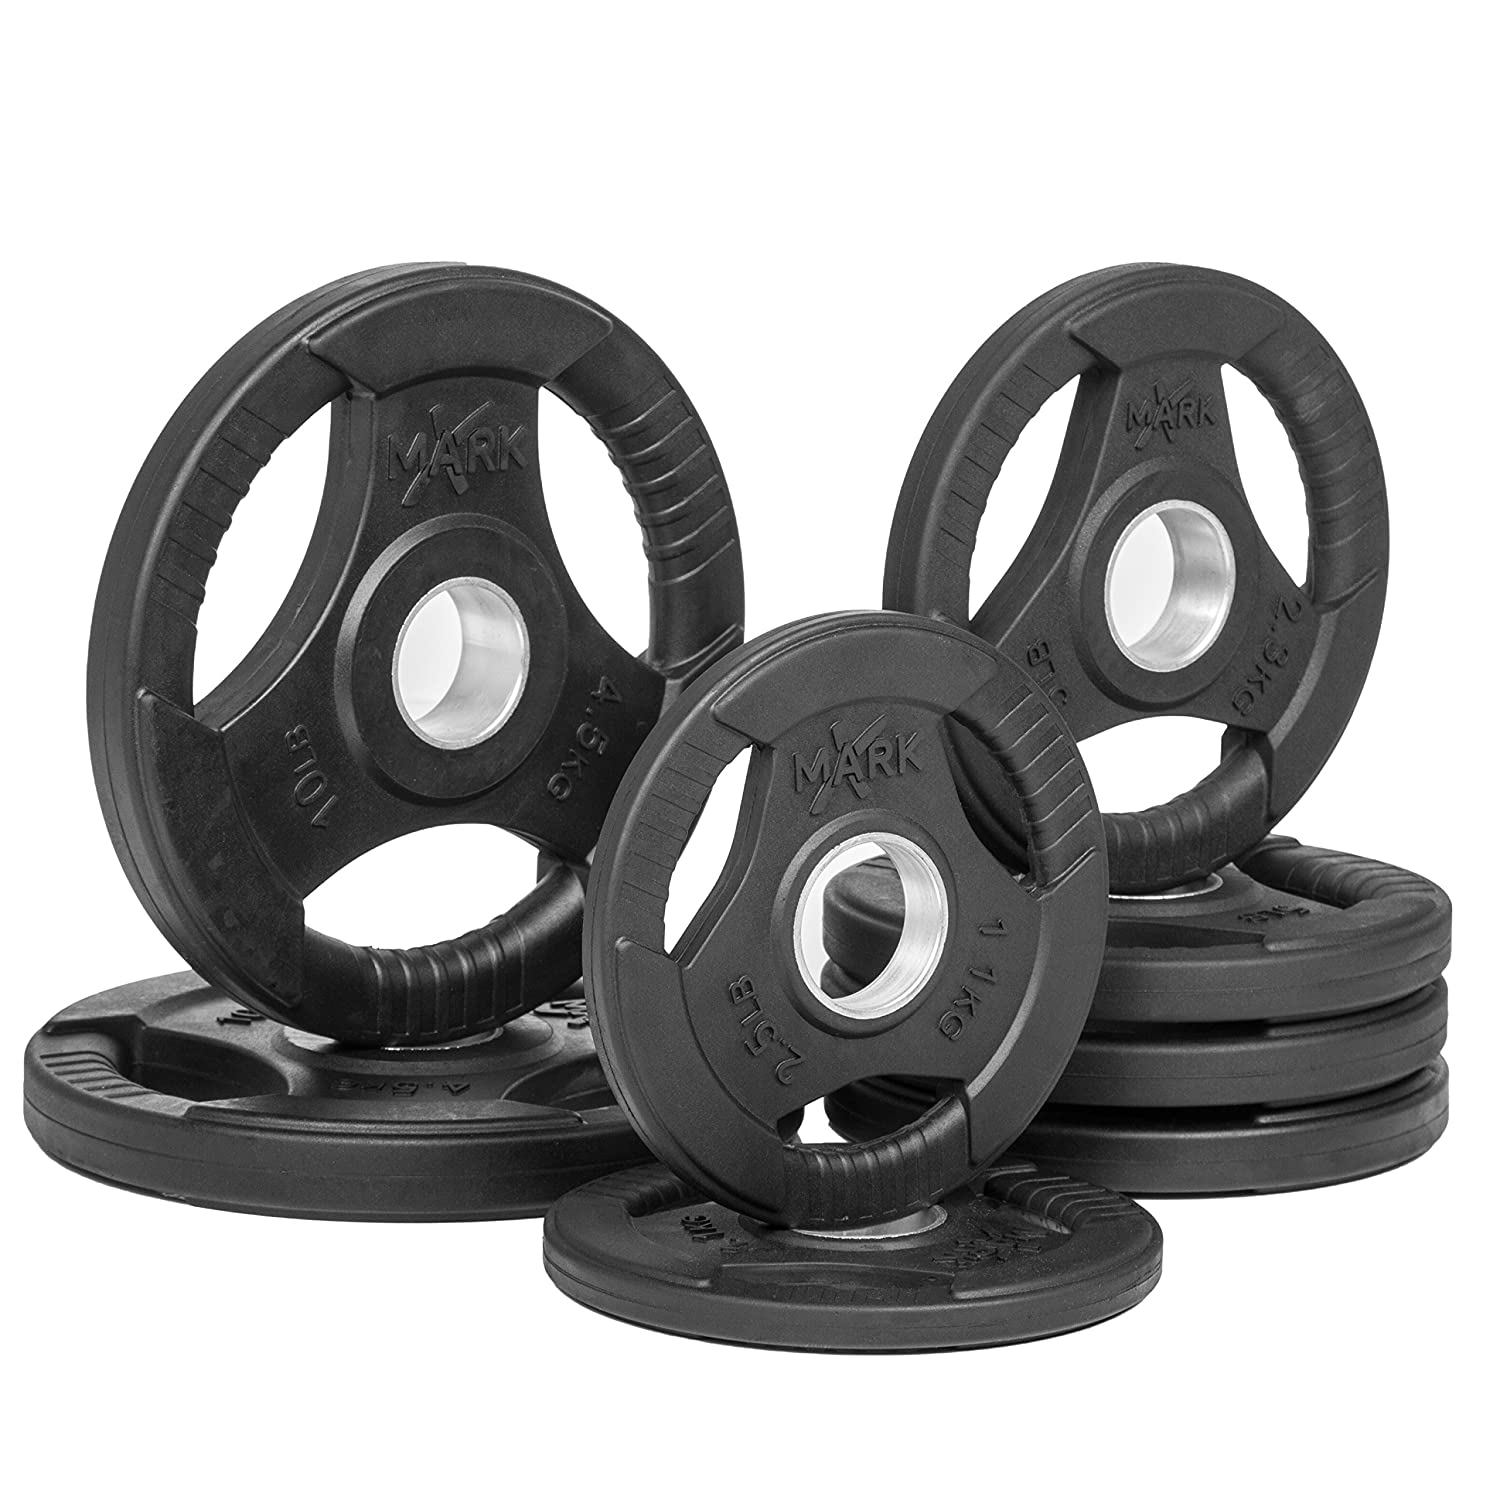 xmark premium quality rubber coated trigrip olympic plate weights sold in sets